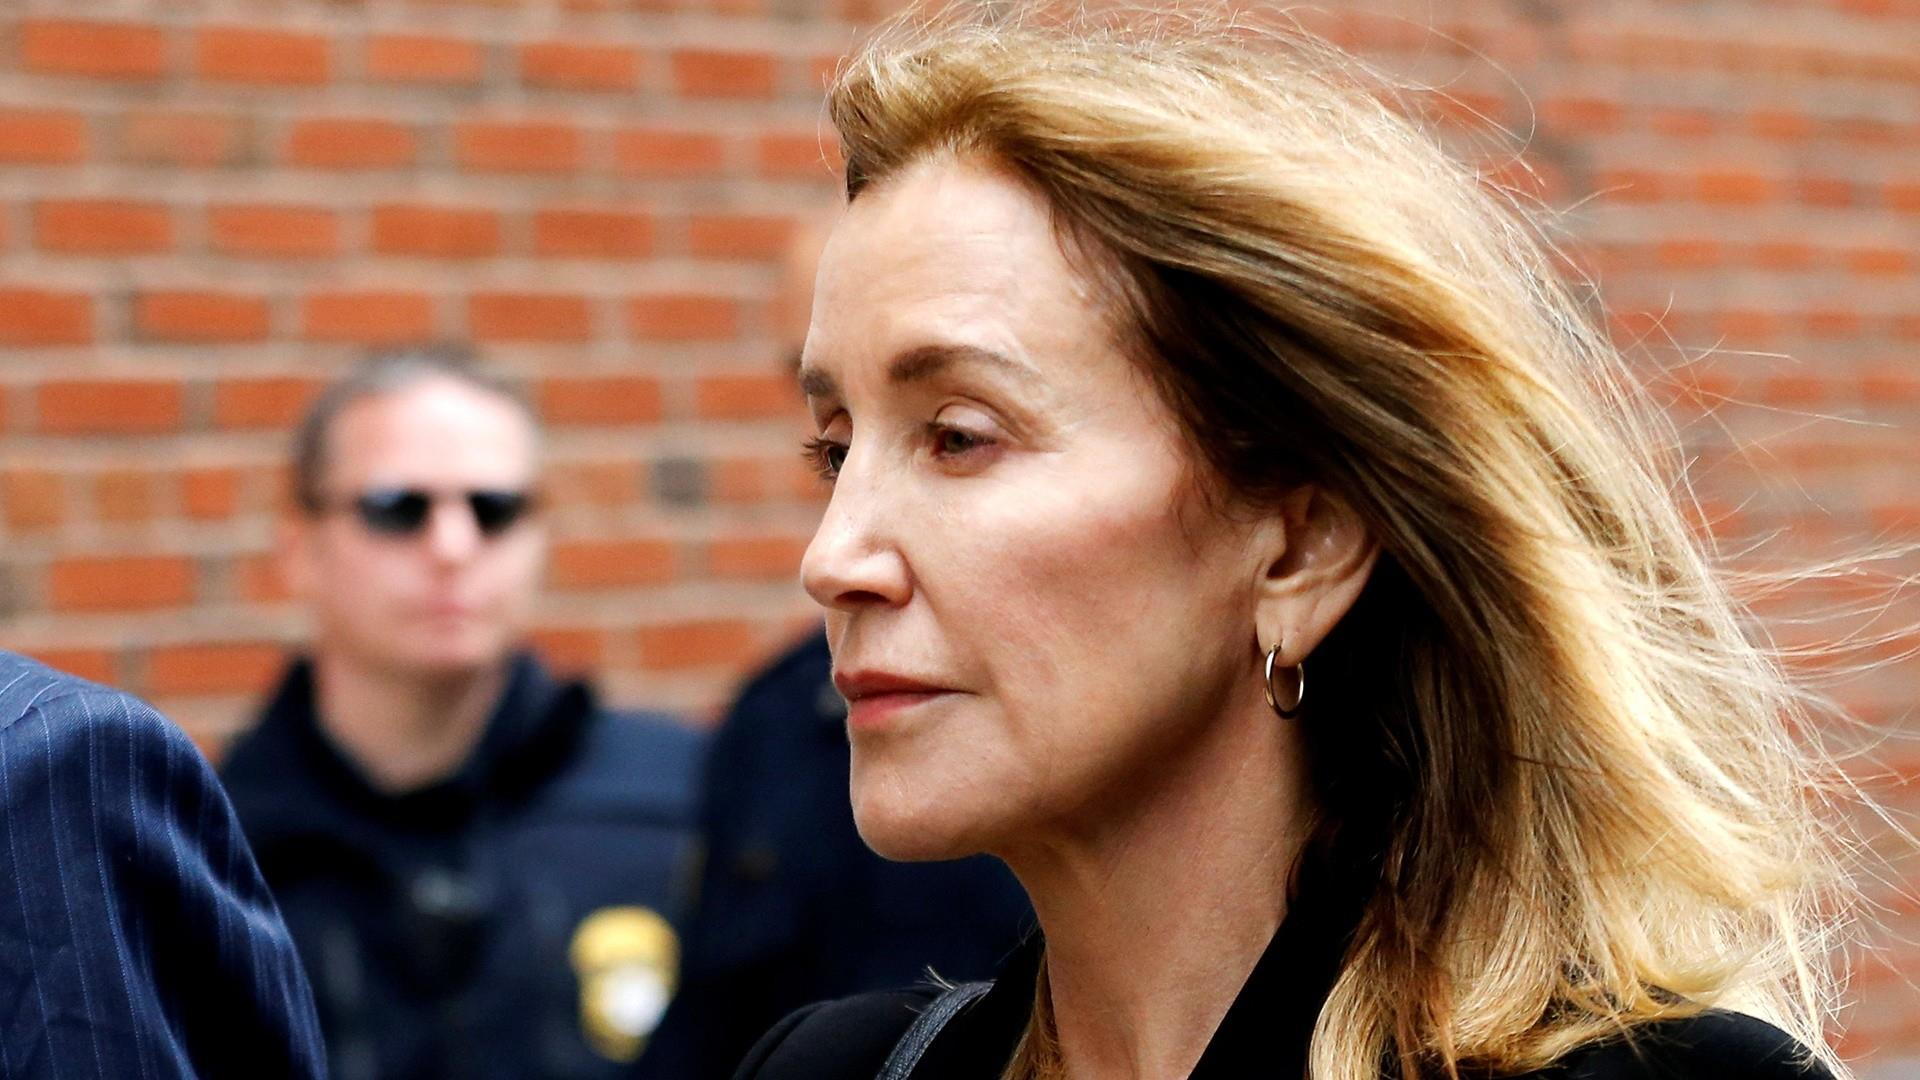 Actress Felicity Huffman pleads guilty at Boston court appearance